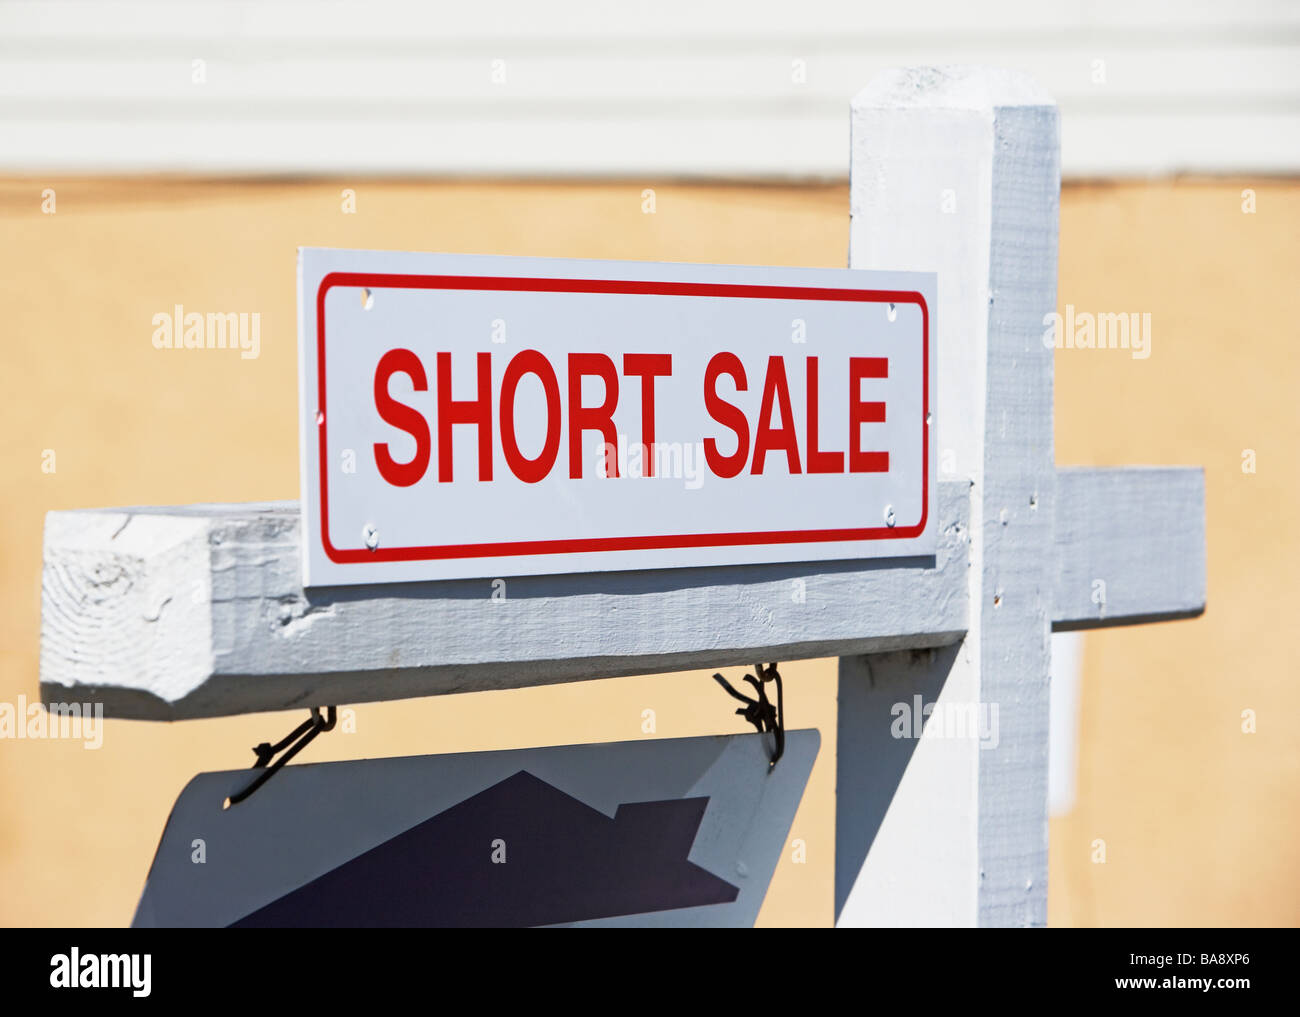 Short sale sign - Stock Image